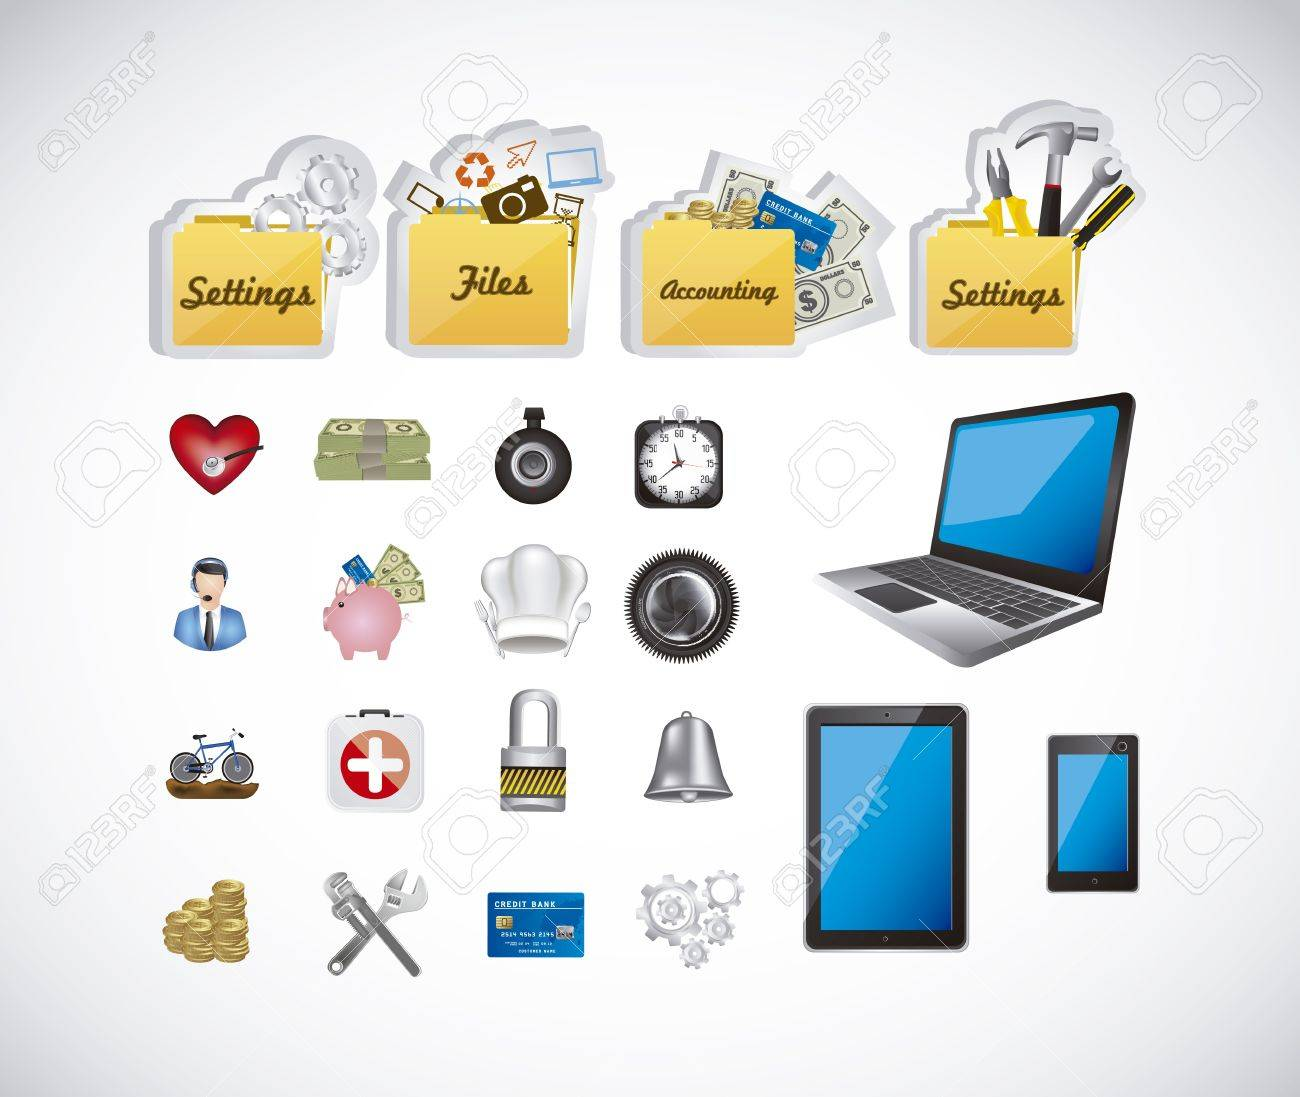 Illustration of icons of applications, app icons, vector illustration Stock Vector - 19051113